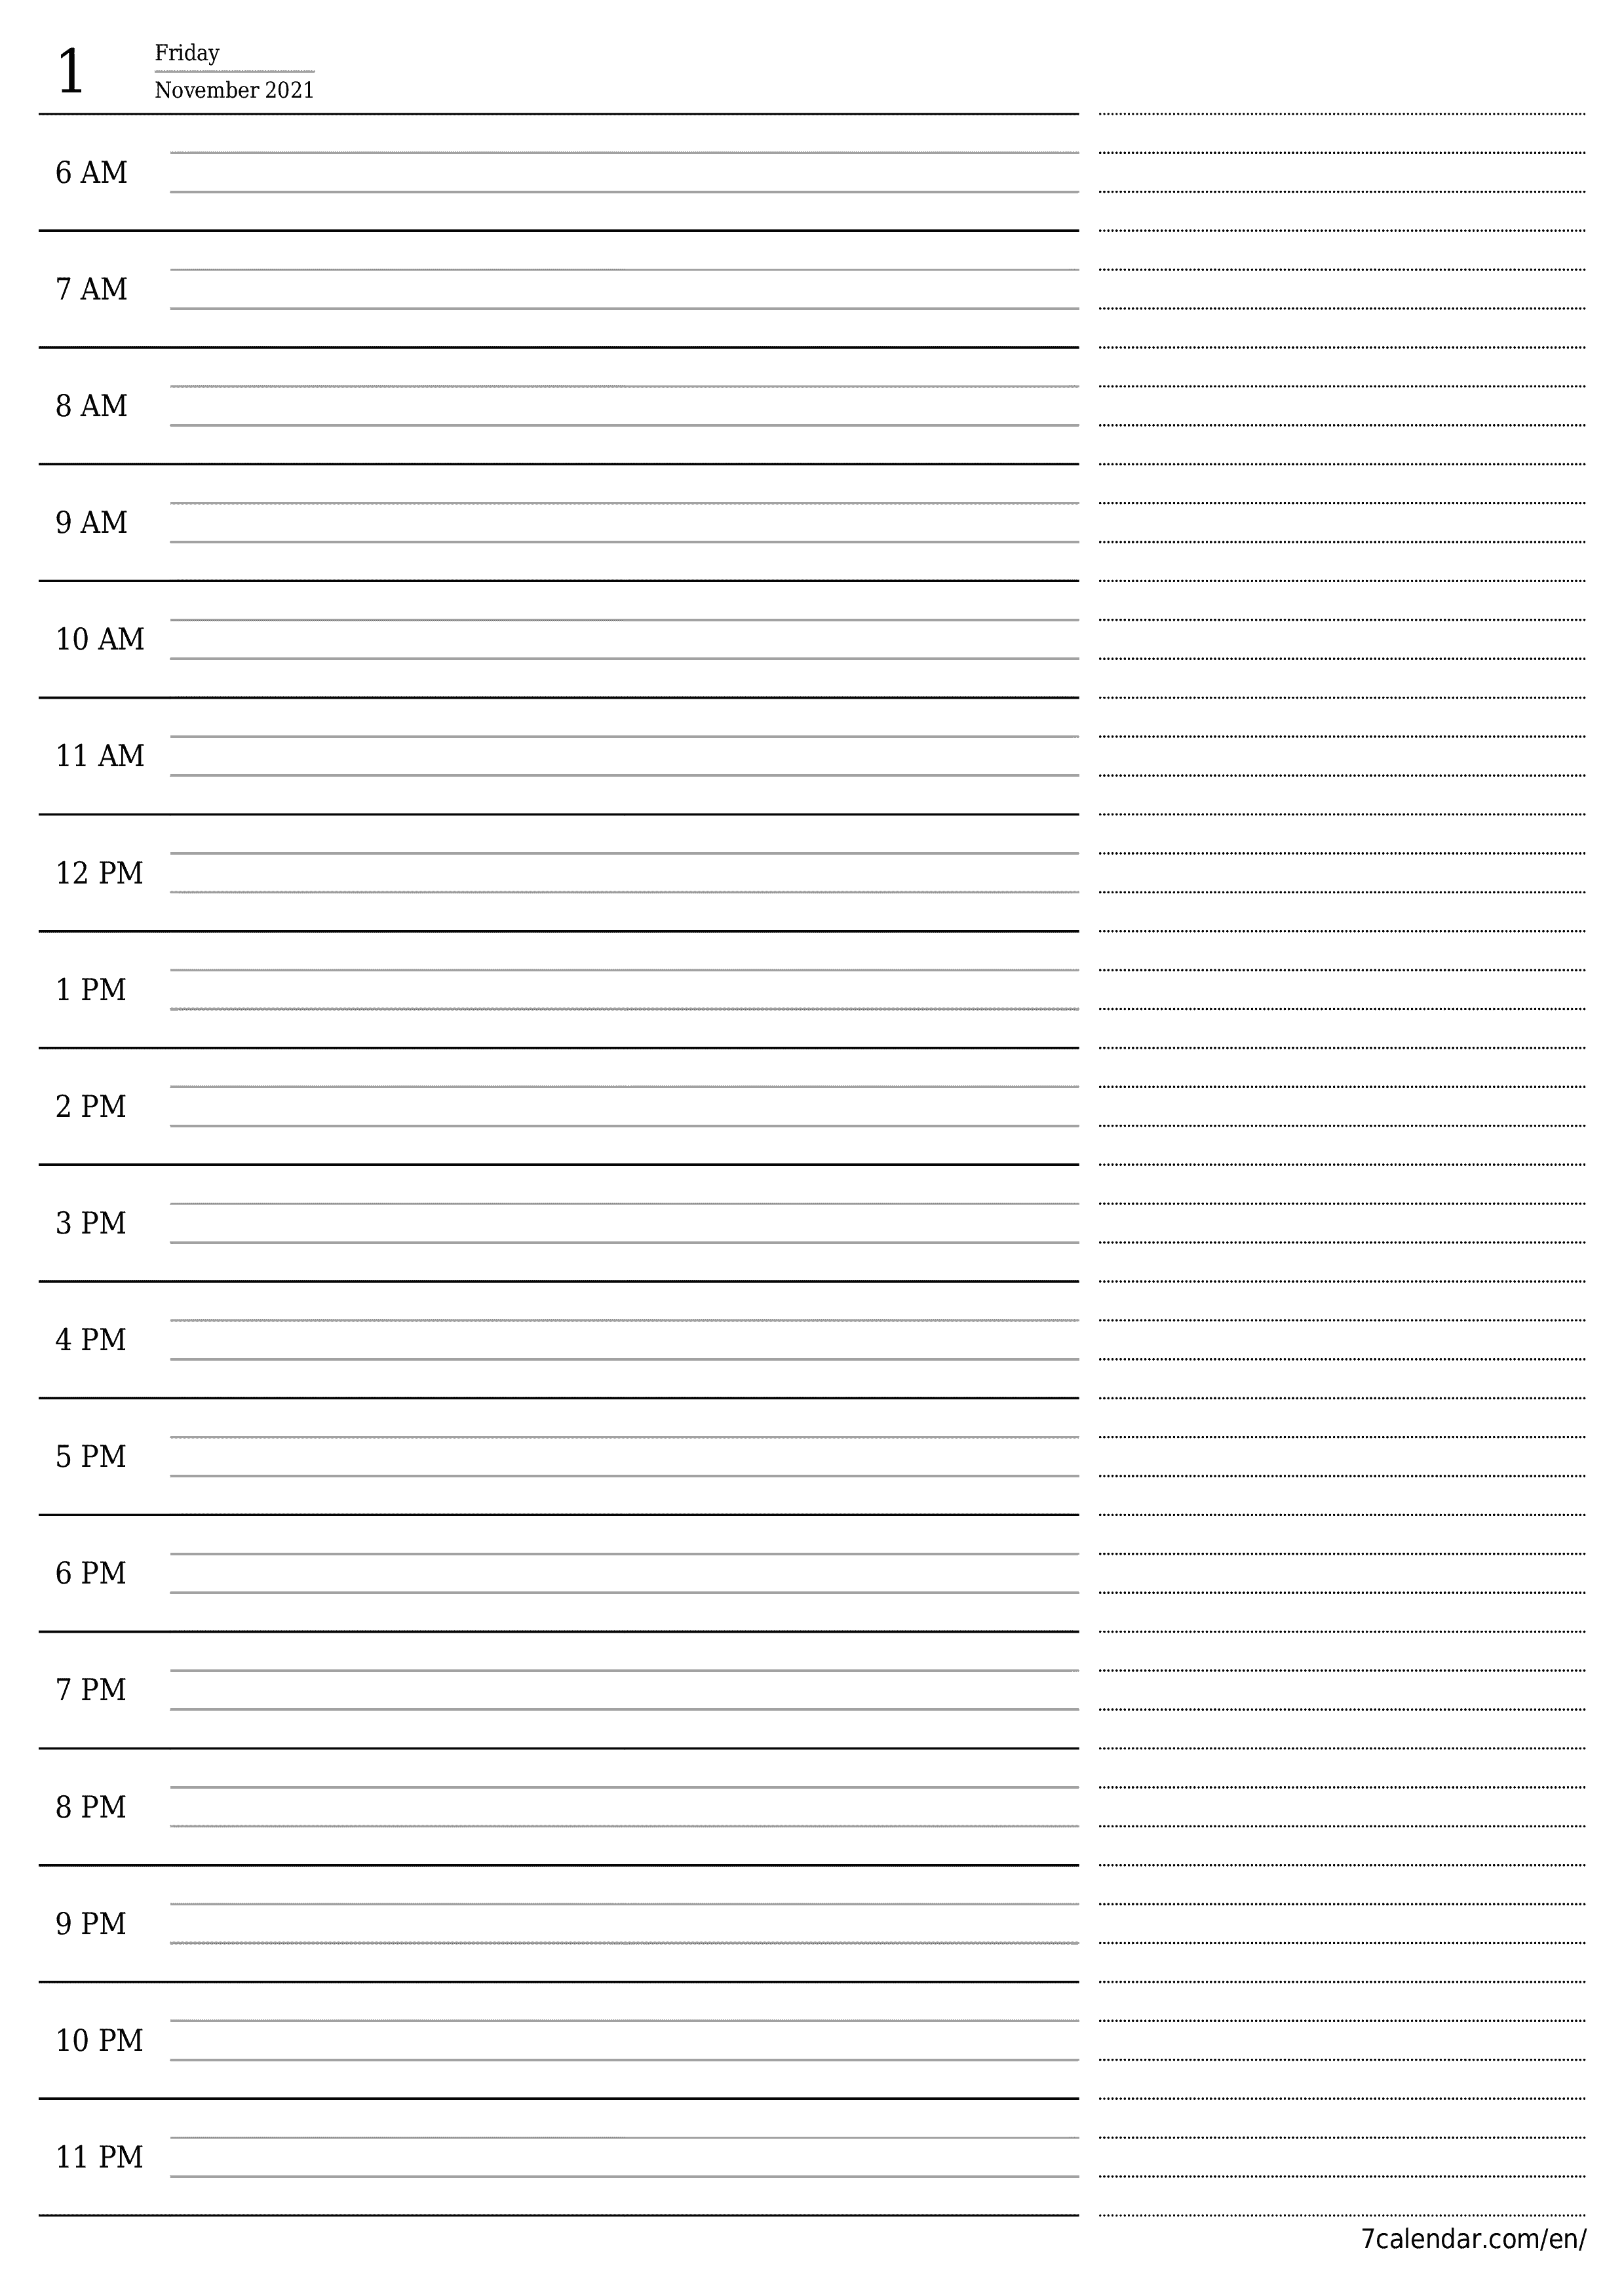 Blank daily calendar planner for day November 2021 with notes, save and print to PDF  - 7calendar.com